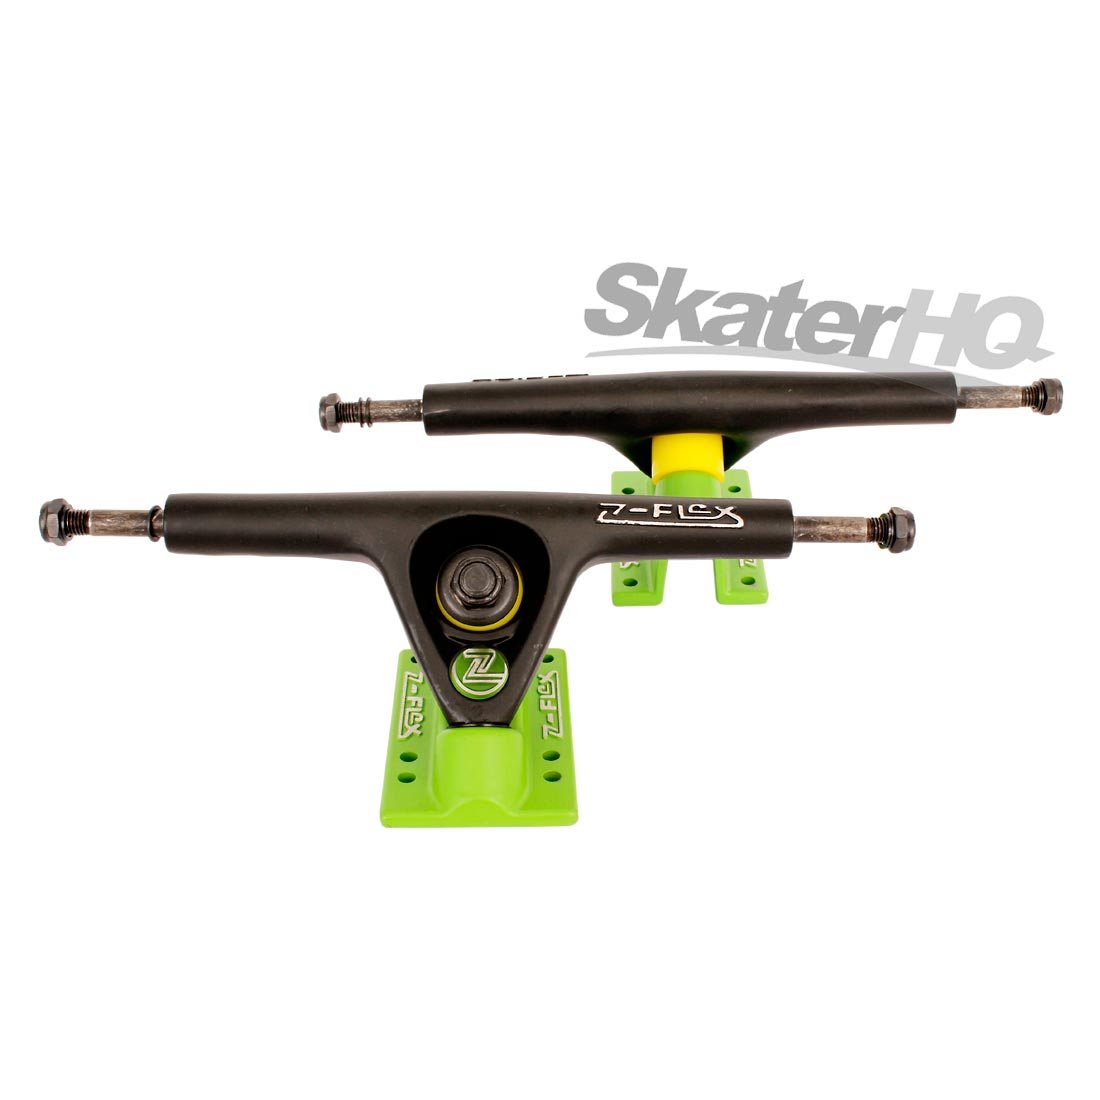 Z-Flex Longboard Truck Black/Green